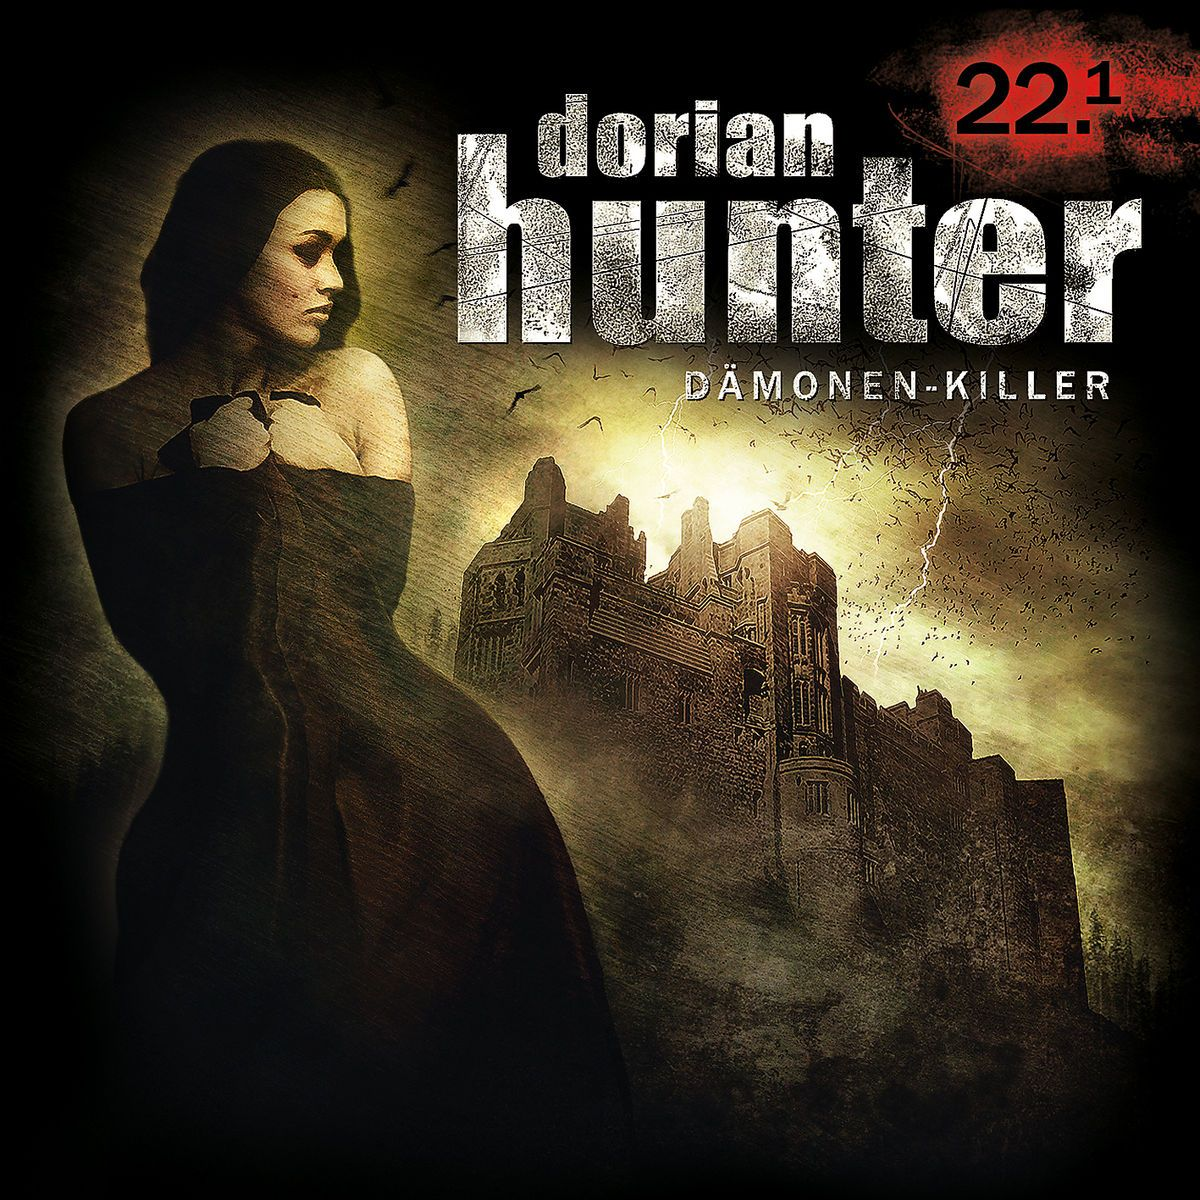 Dorian-Hunter-Daemonenkiller-22-1